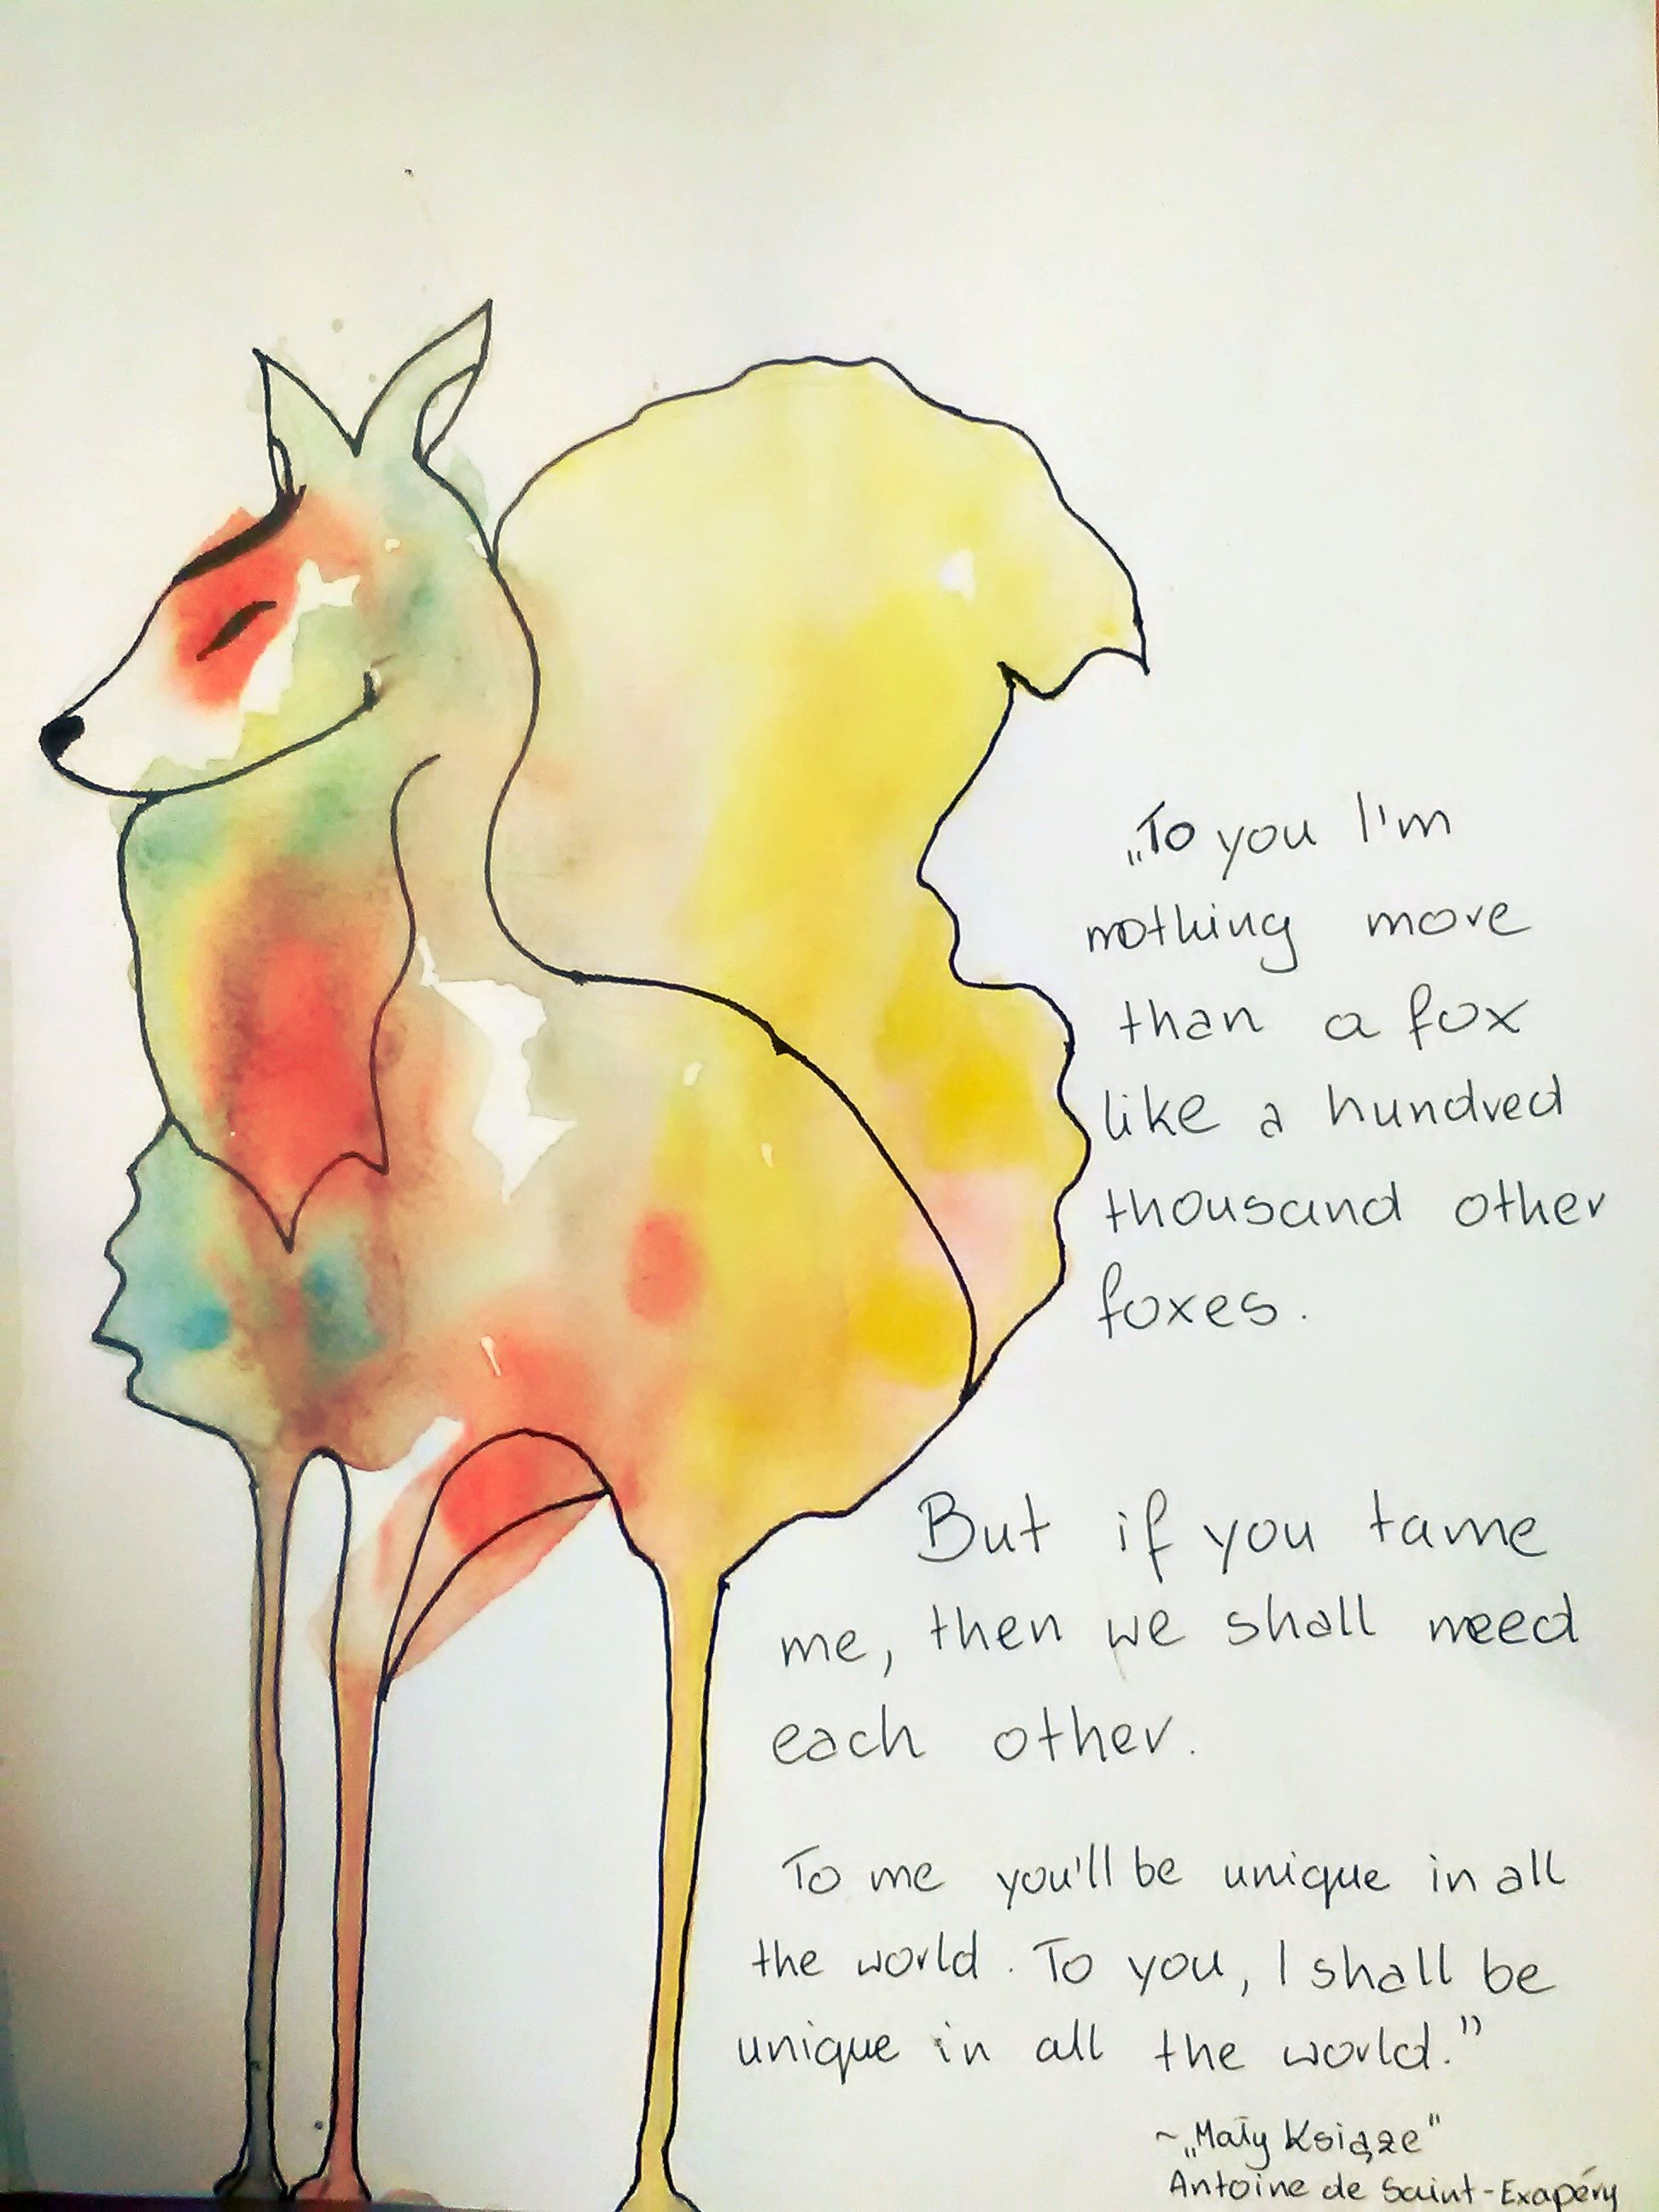 """""""To you I'm nothing more than a fox like a hundred thousand other foxes. But if you tame me, then we shall need each other. To me, you'll be unique in all the world. To you, I shall be unique in all the world...""""  Antoine de Saint-Exupéry.  #fox, #little prince, #watercolor"""